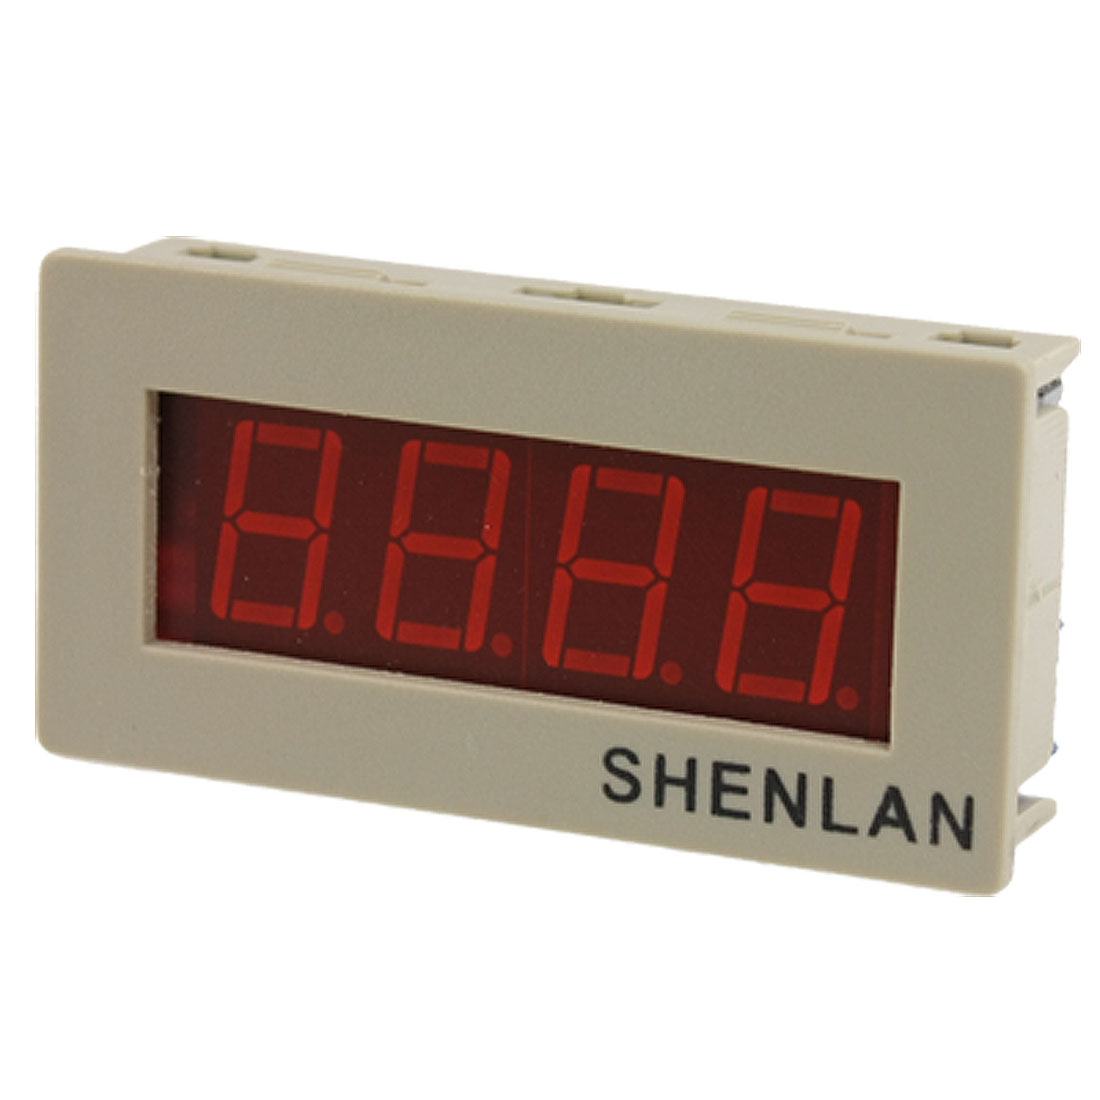 DC 0-200V 3 1/2 LED Digital Panel Voltmeter Voltage Meter Gauge